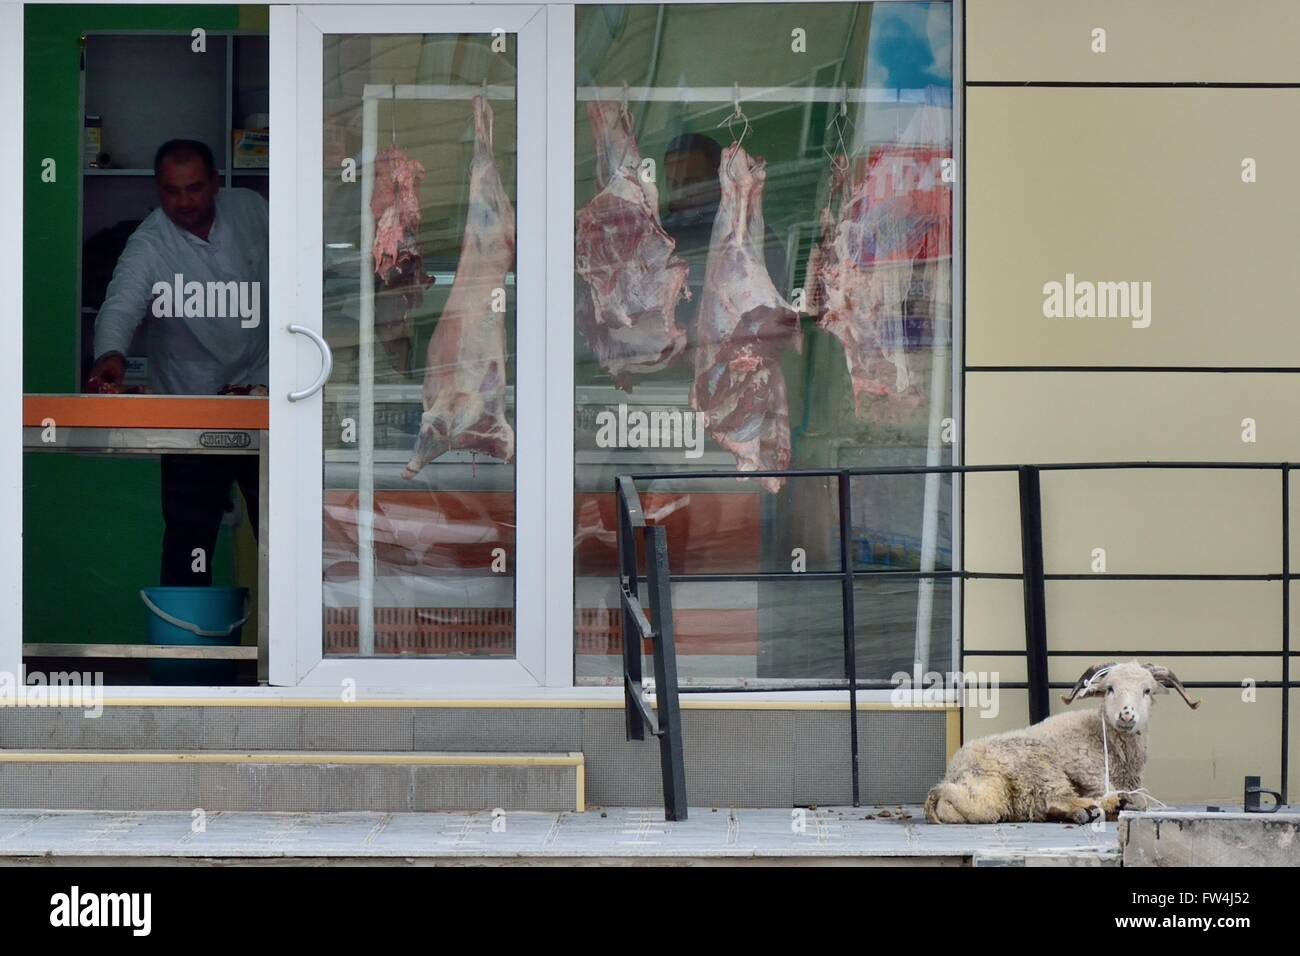 BAKU, AZERBAIJAN - MARCH 03 2014 A sheep tied up outside a butcher's shop awaiting slaughter.  Animals are often - Stock Image